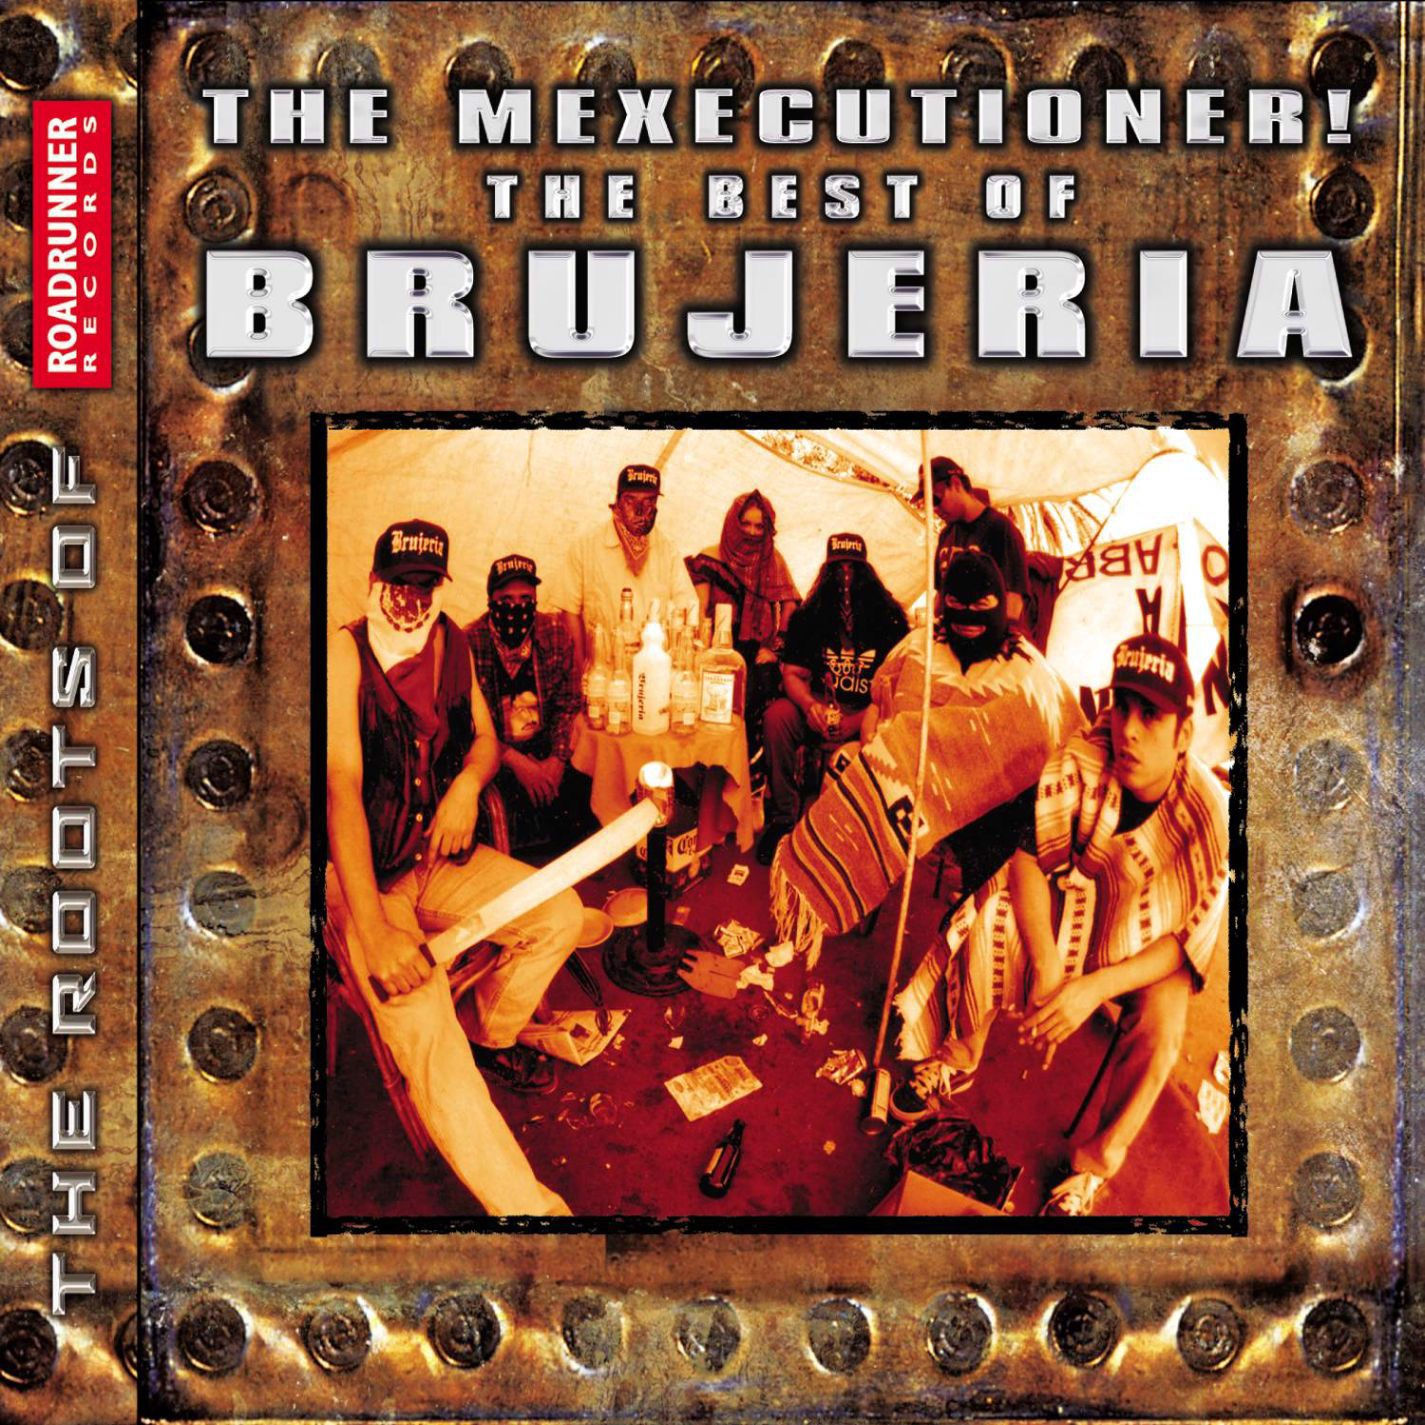 The Mexicutioner! The Best of Brujeria